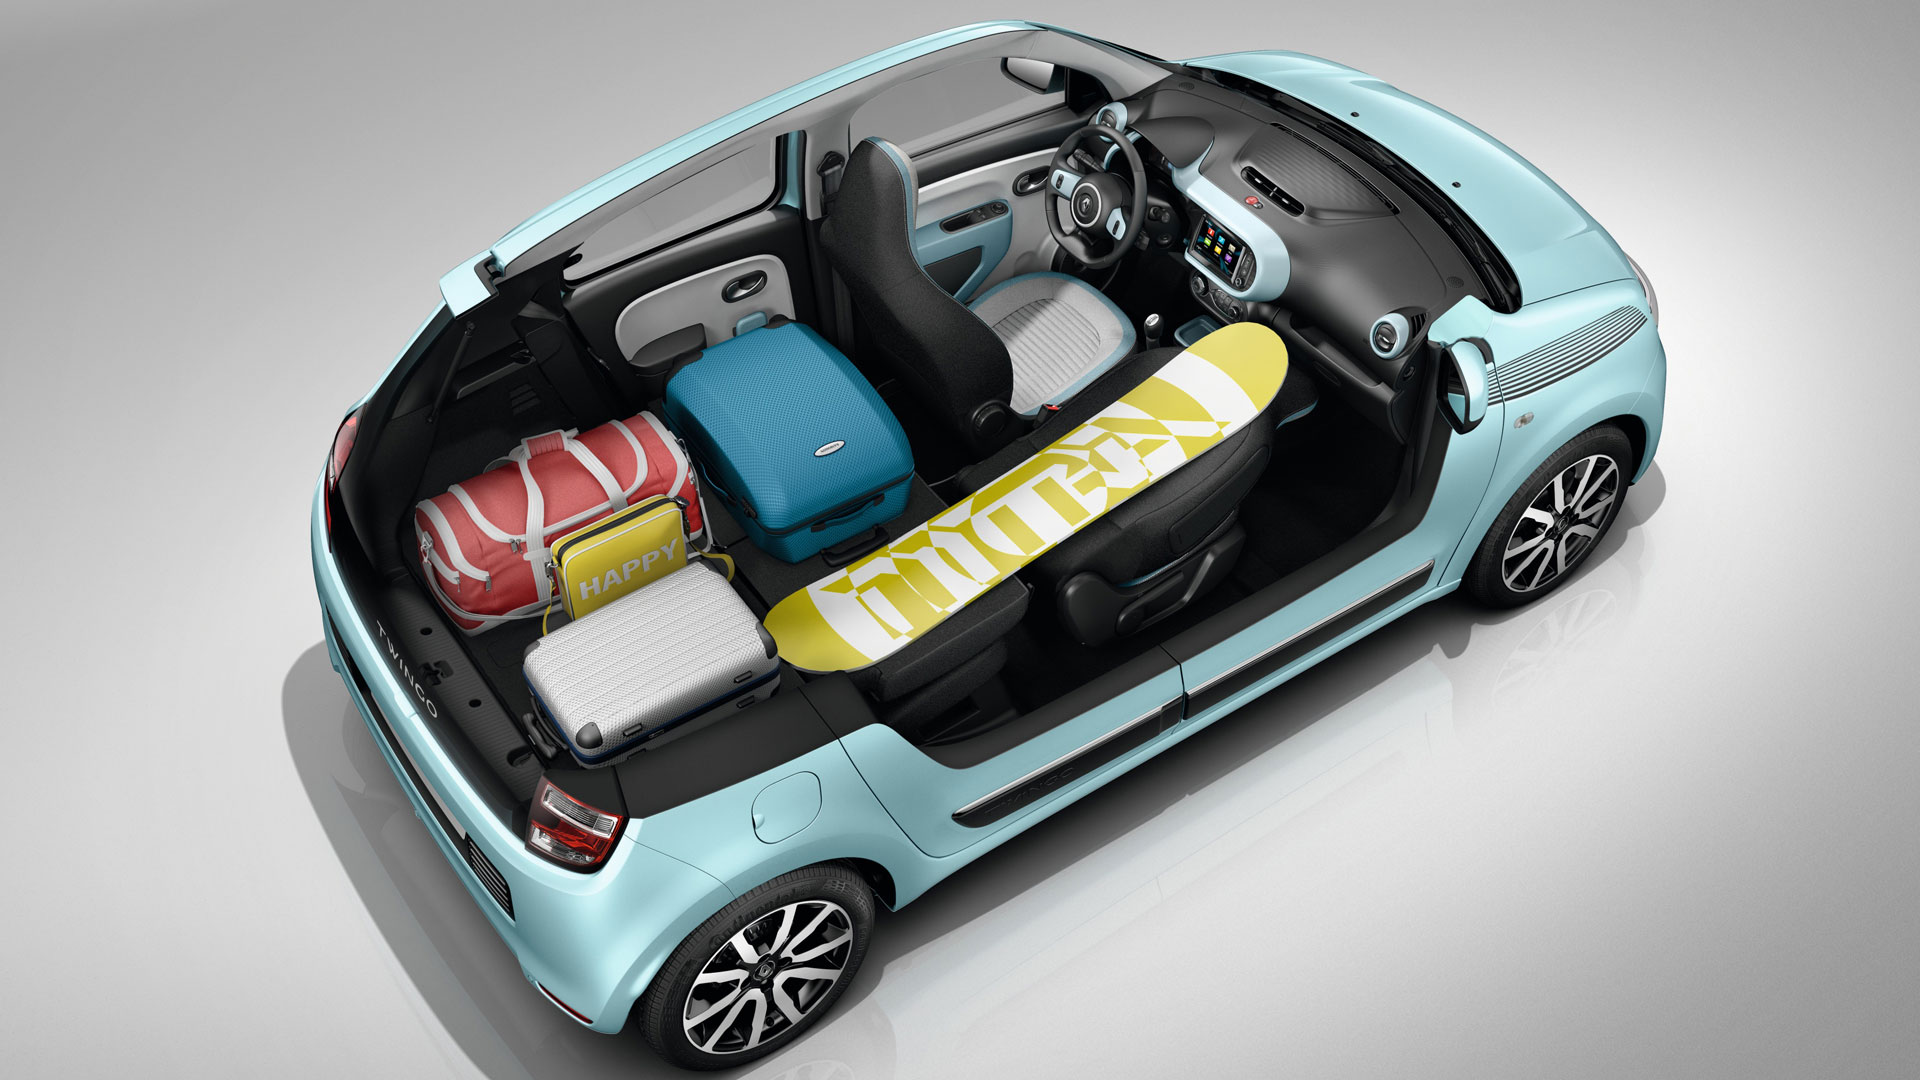 nouvelle renault twingo renault chartres. Black Bedroom Furniture Sets. Home Design Ideas